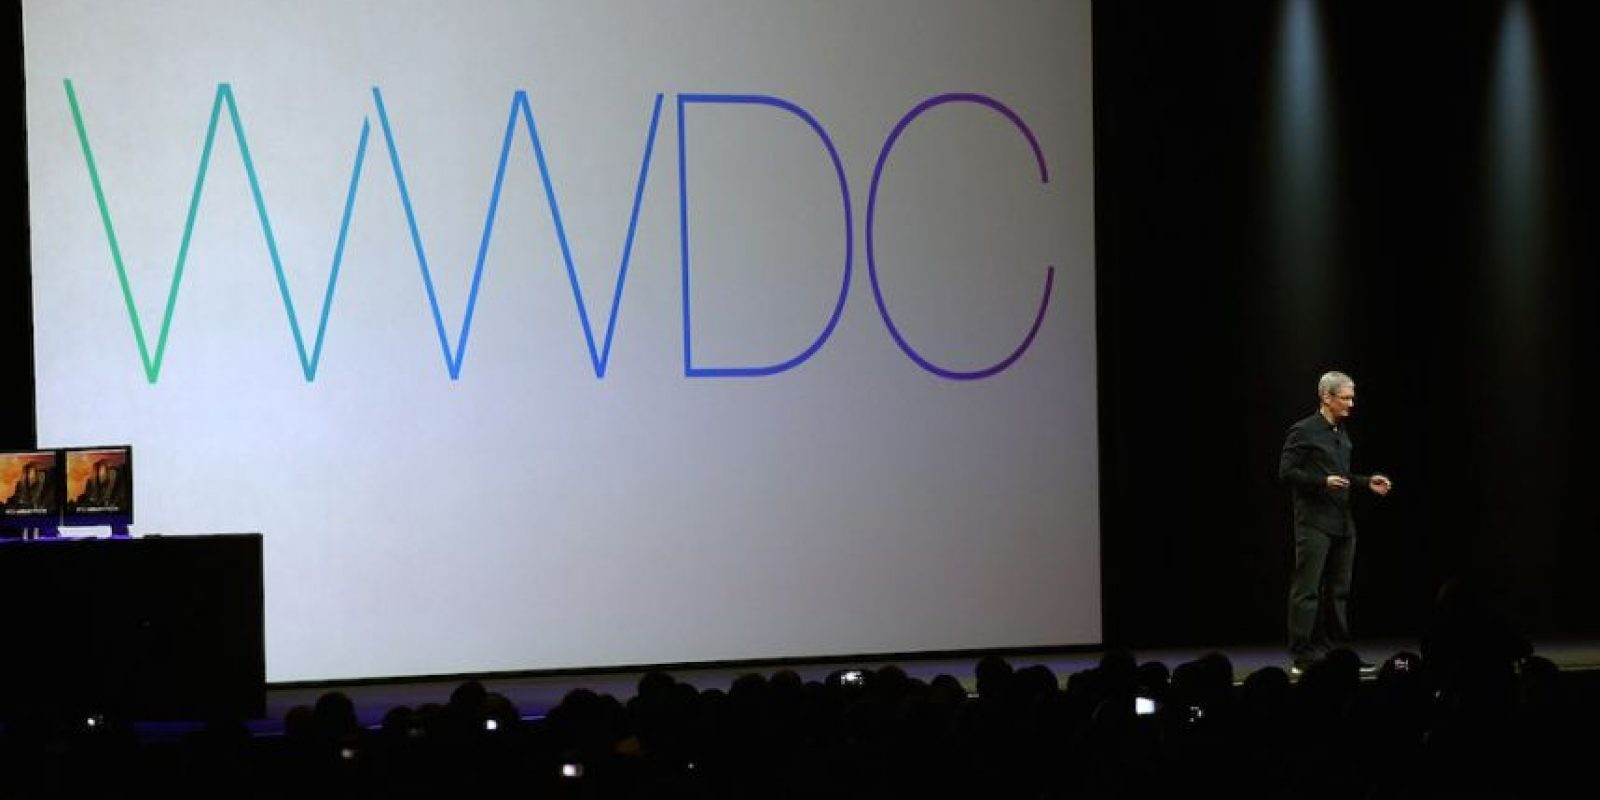 WWDC – San Francisco, California, Estados Unidos. Foto: Getty Images